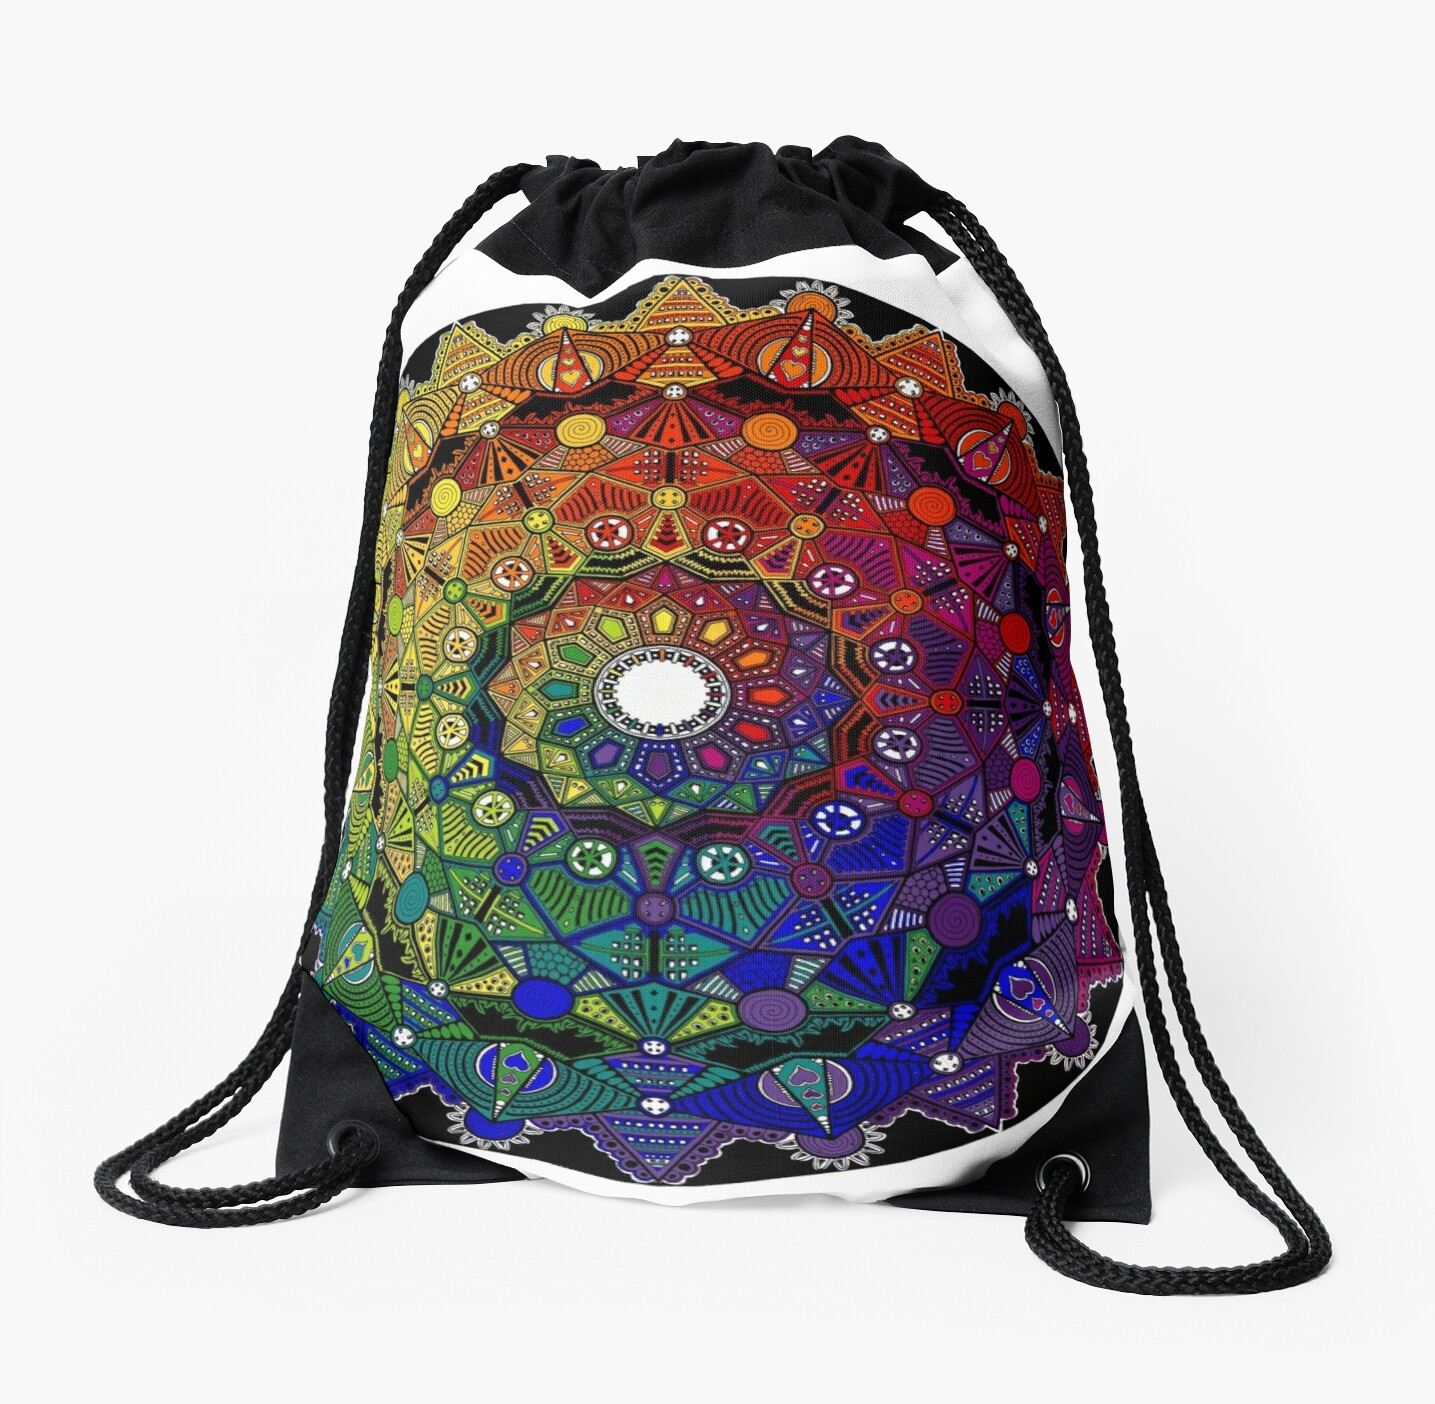 The mandala coloring book jim gogarty - Mandala 46 T Shirts Hoodies And Stickers And Cases Jim Gogarty By Mandala